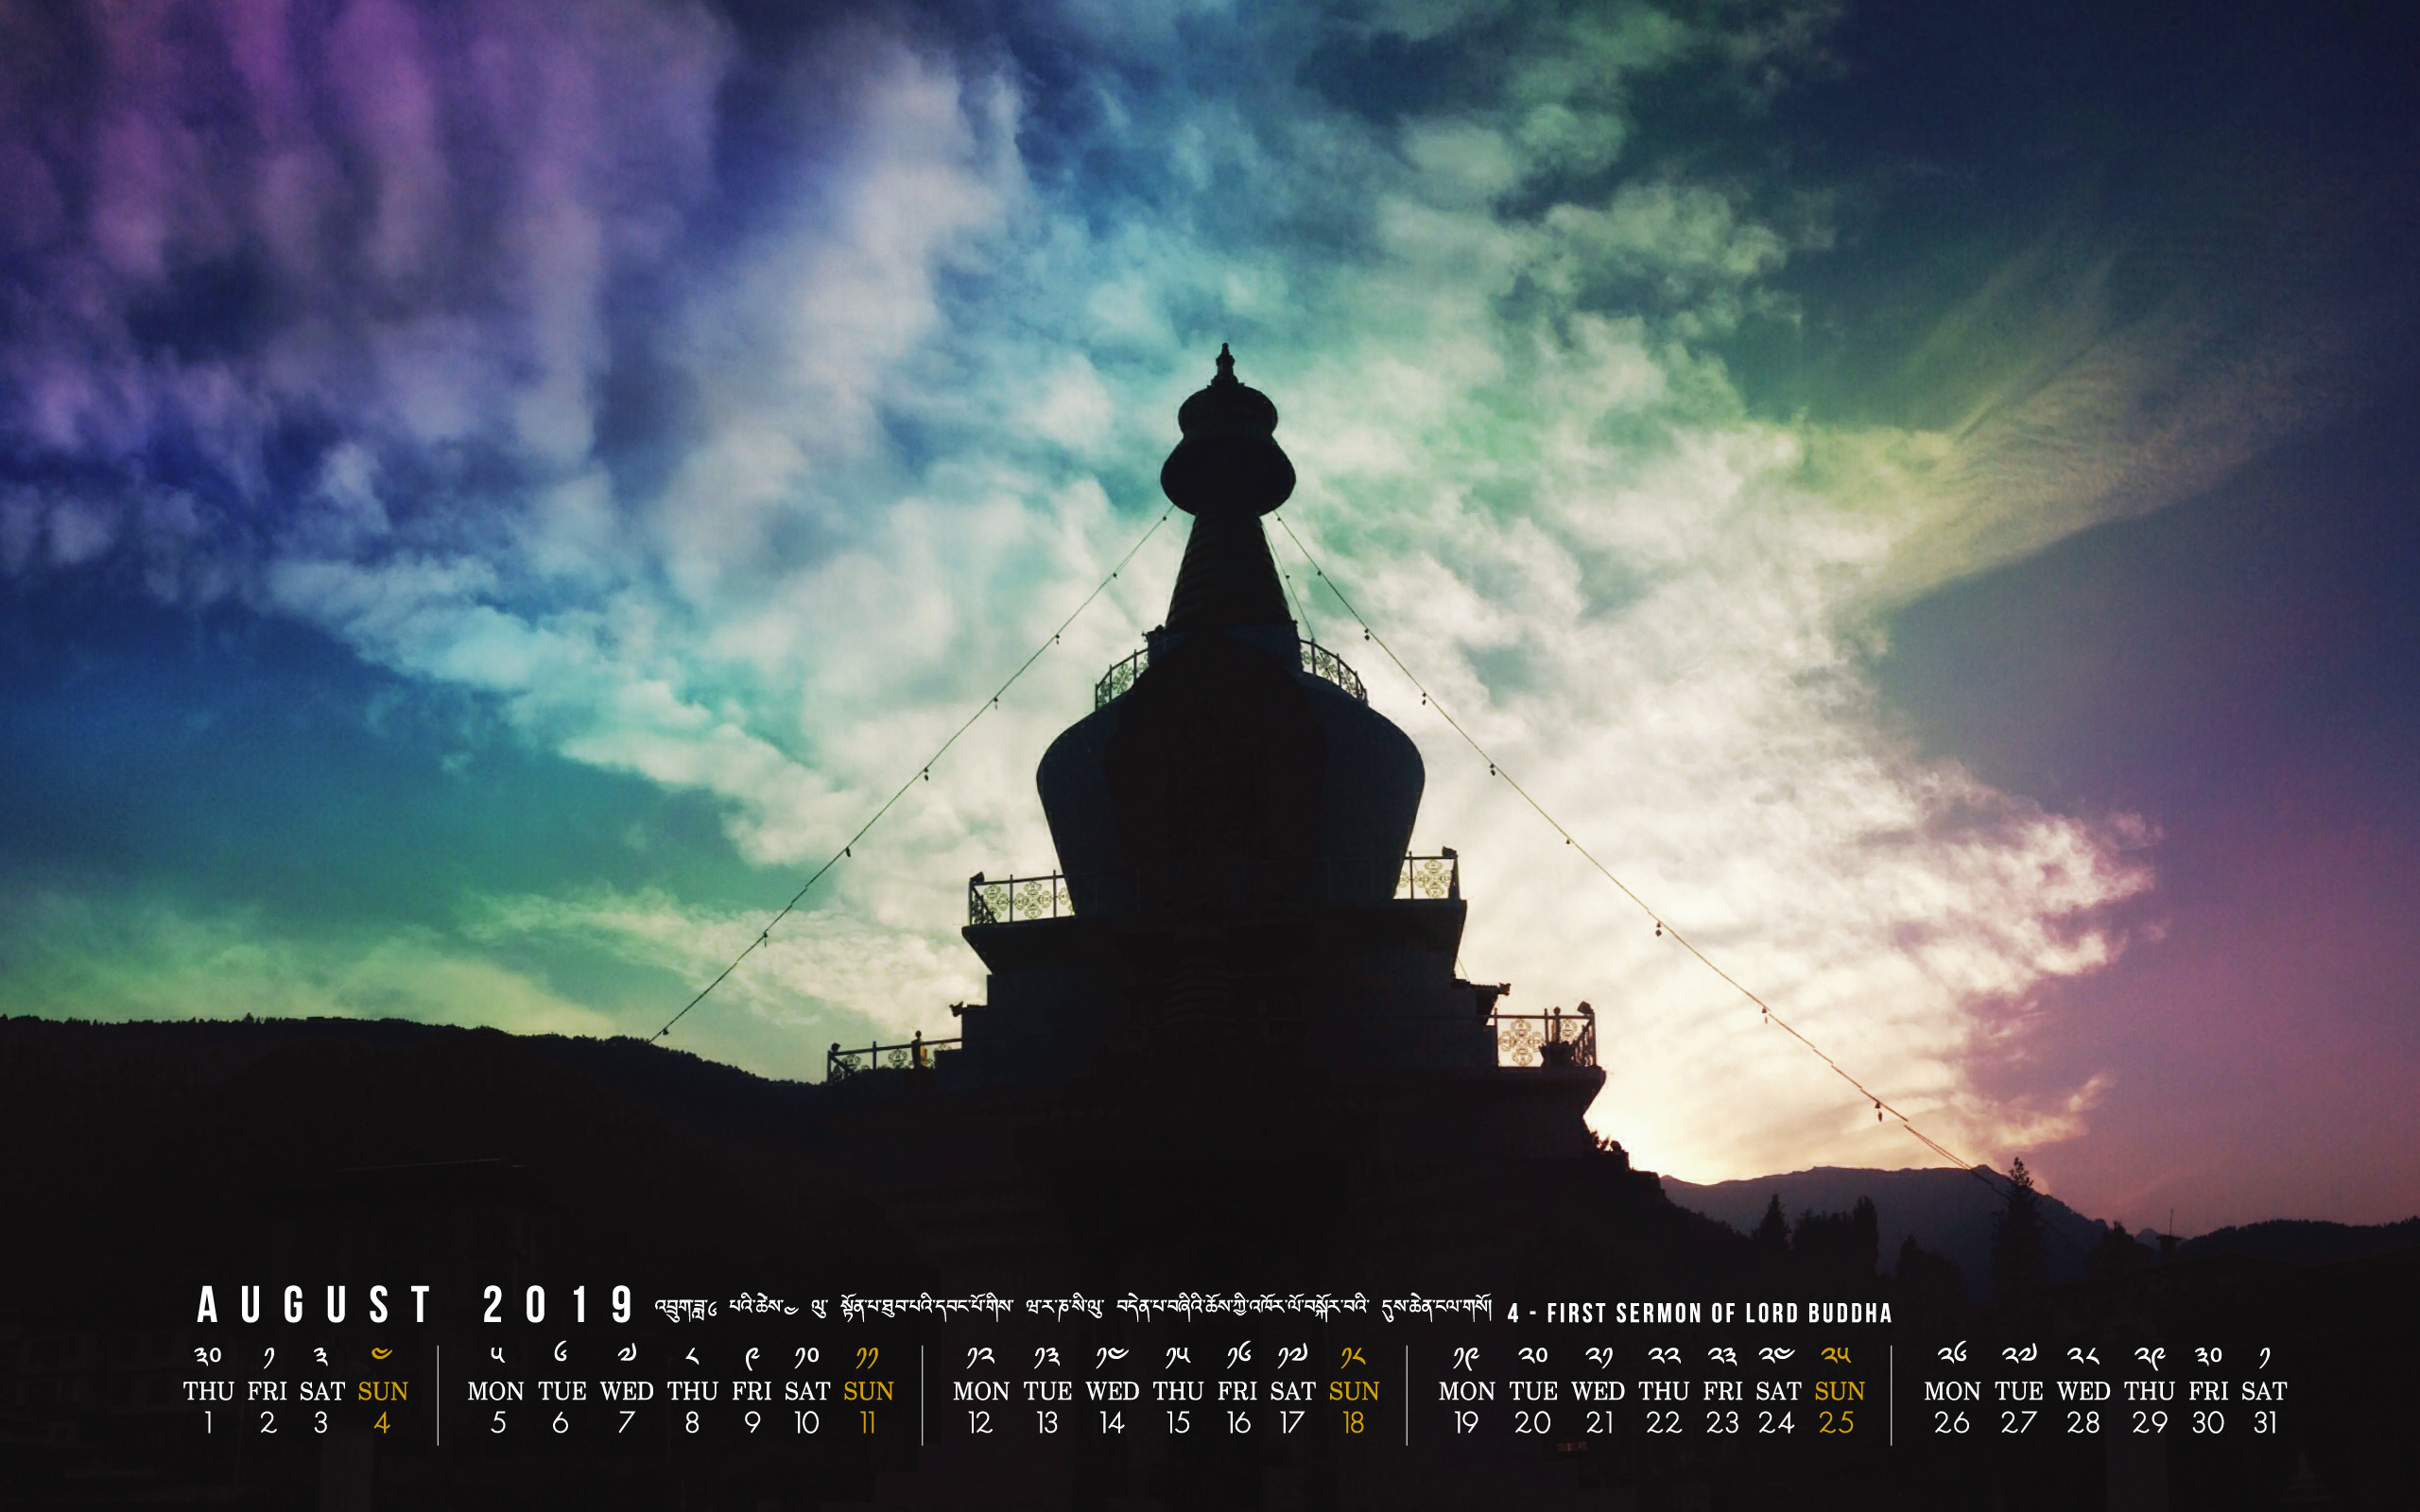 Desktop Calendar For August 2019